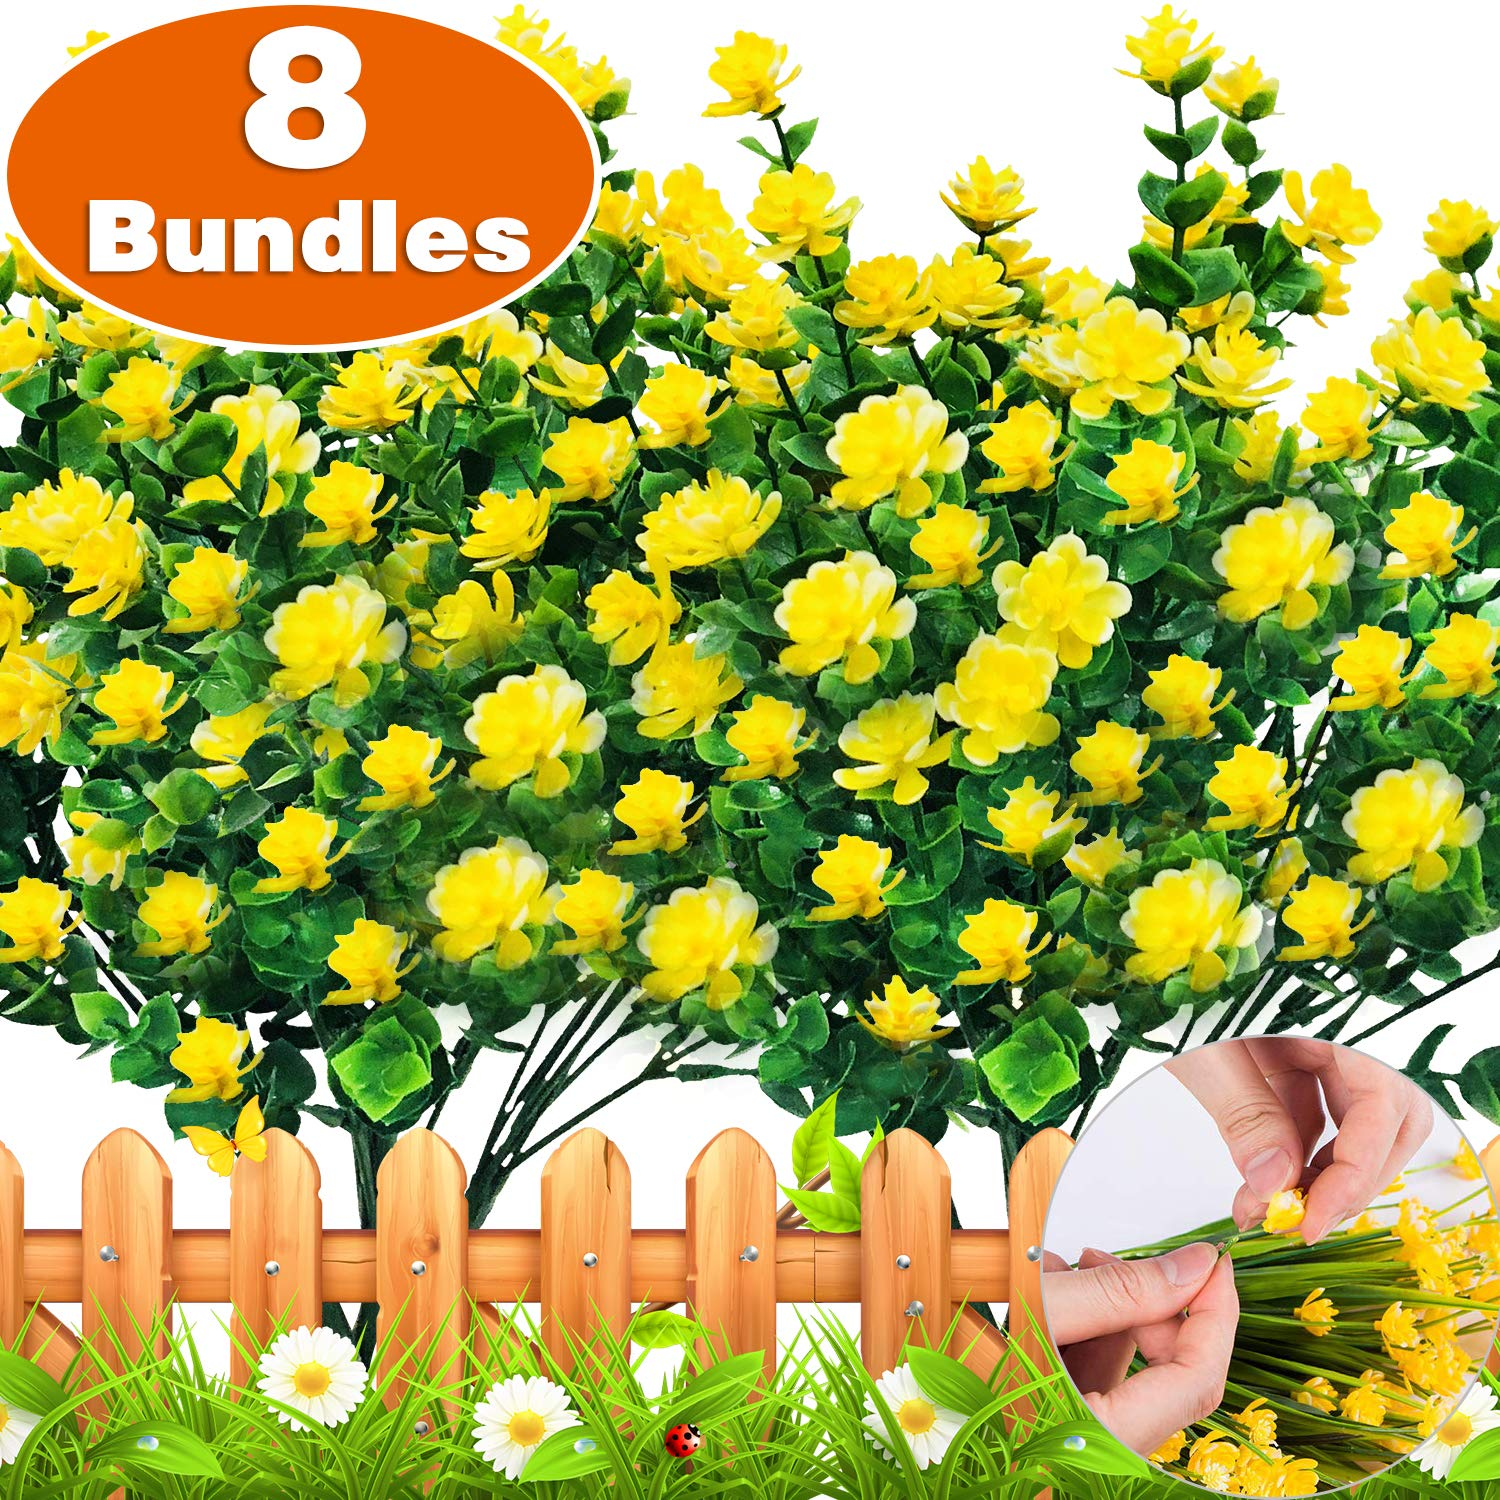 TURNMEON Artificial Flowers Fall Garland, 8 Bundles Faux Outdoor UV Resistant Daffodils Greenery Shrubs Plants Artificial Fake Flowers Indoor Outside Hanging Planter Home Garden Fall Decor by TURNMEON